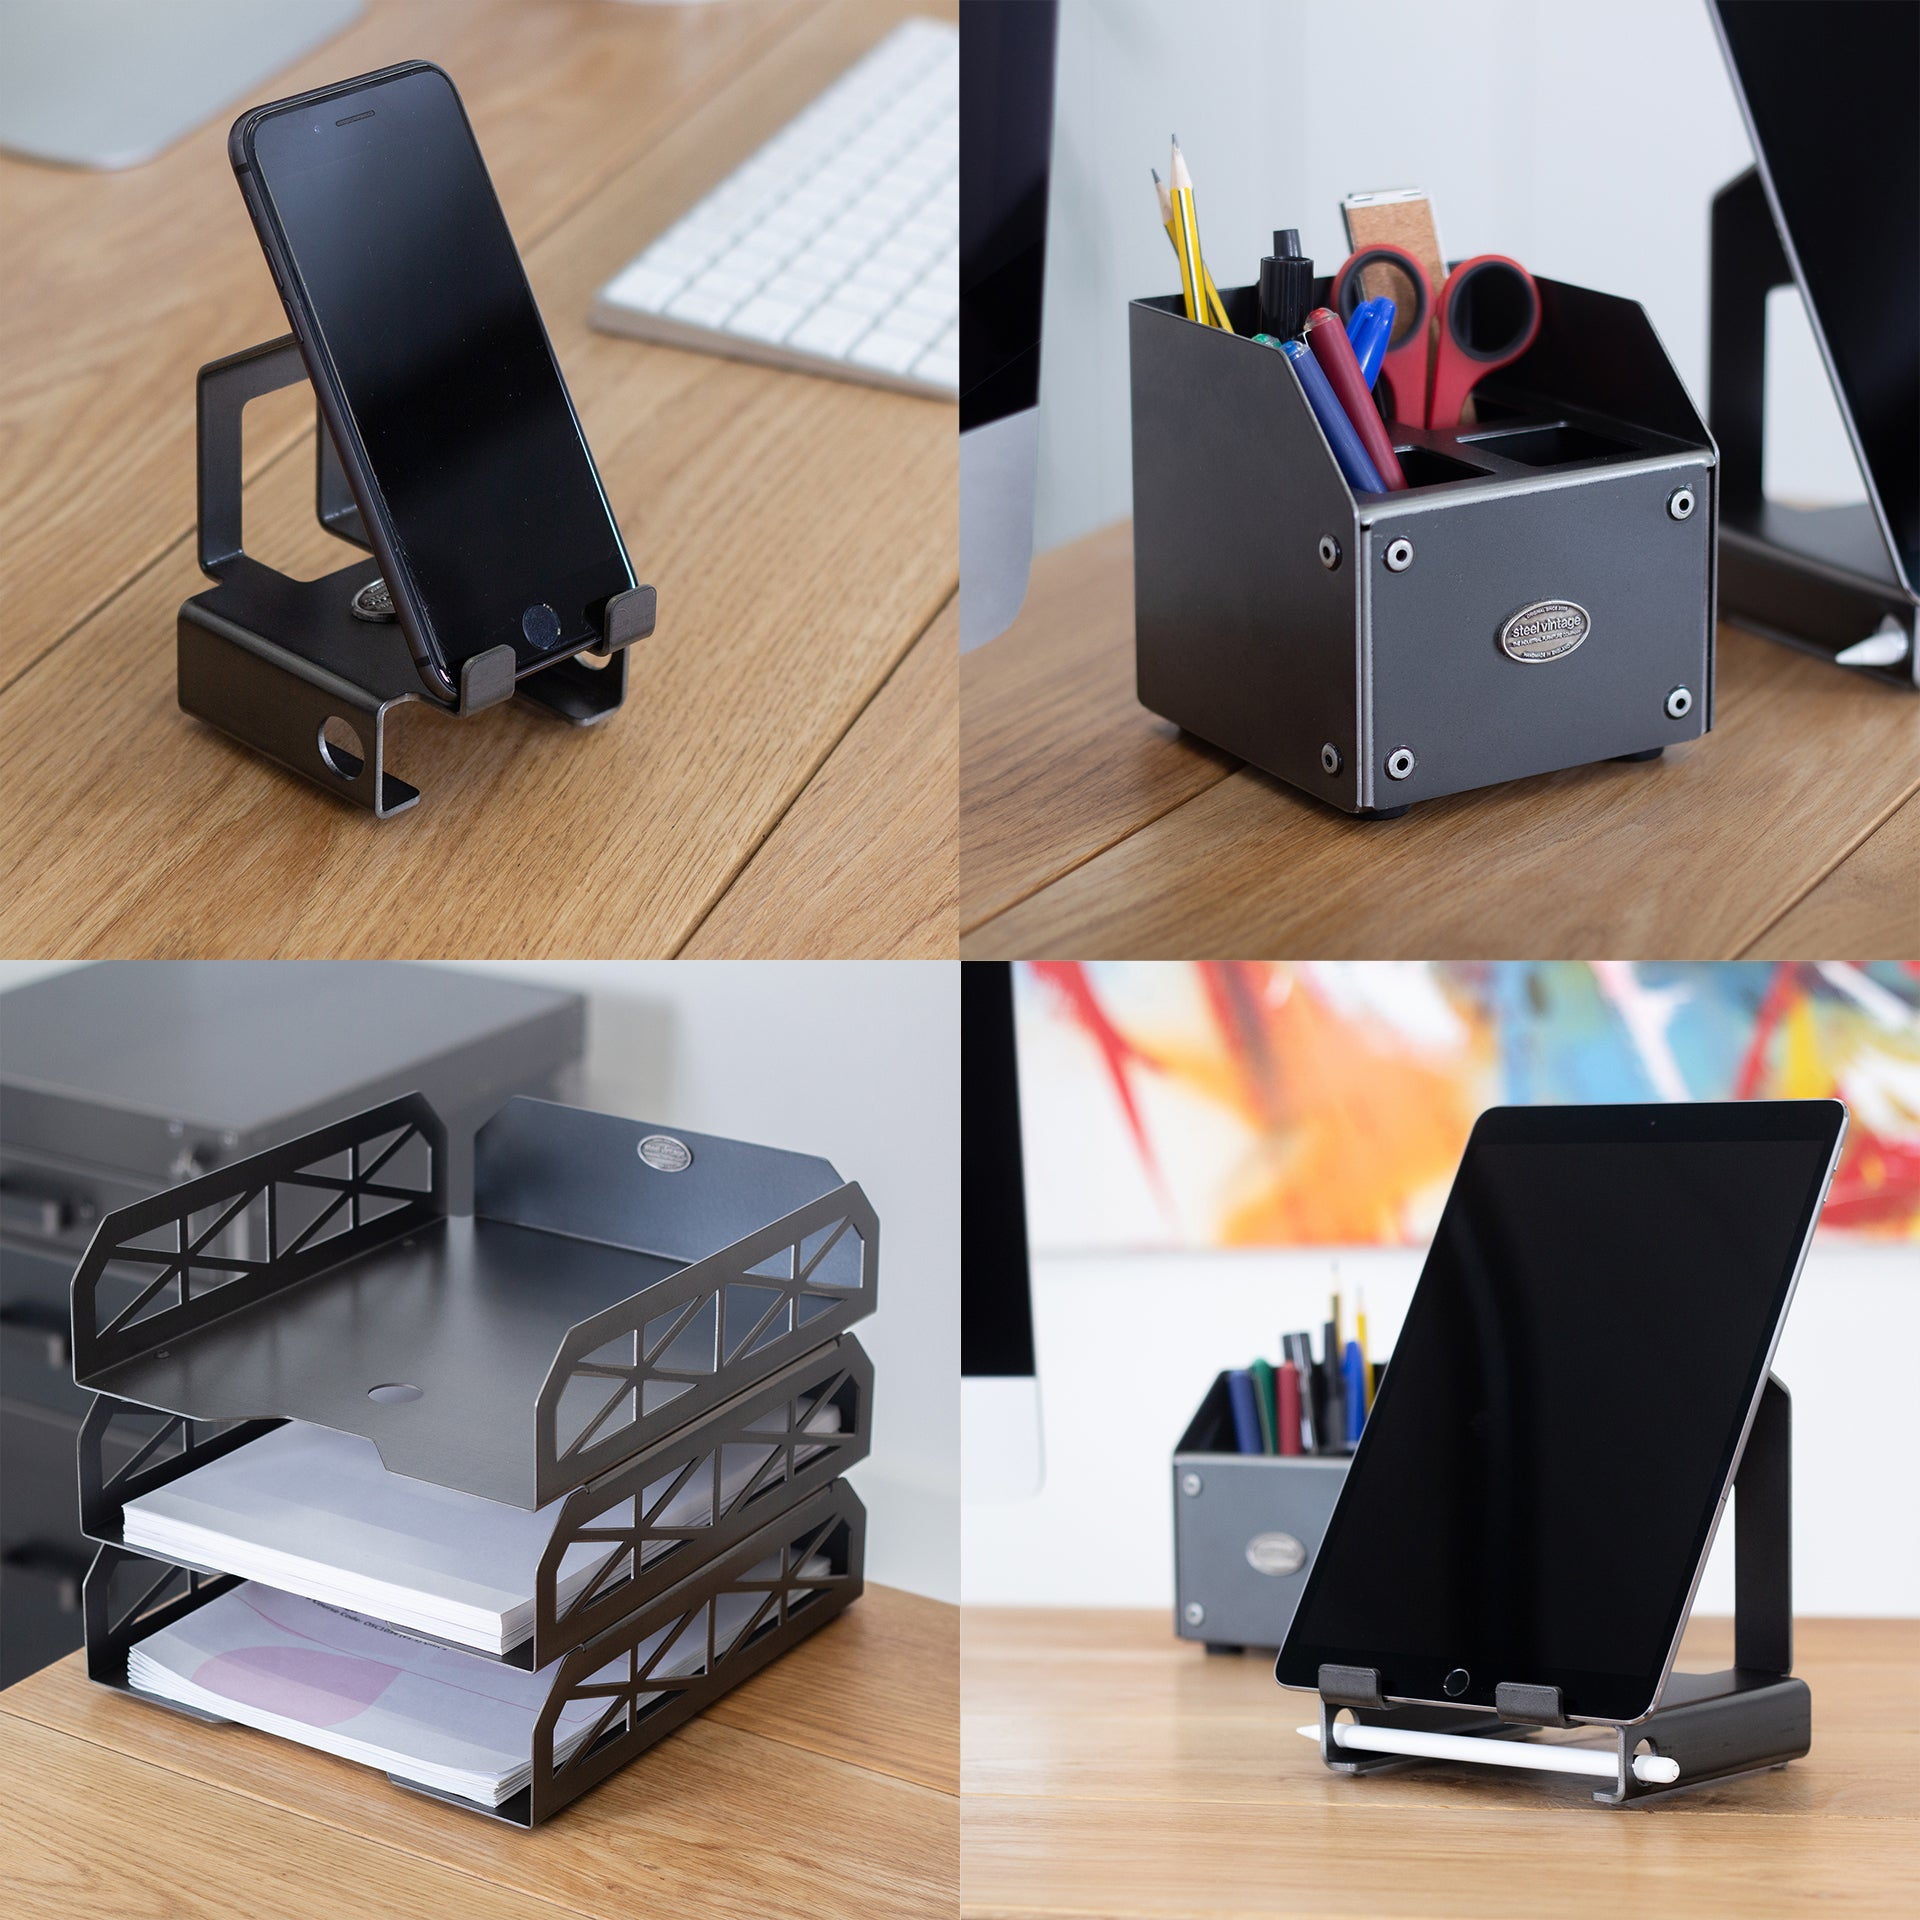 Package 4 - Mobile Phone Stand, Small Pen Tidy, Tablet Stand and A4 Paper Trays